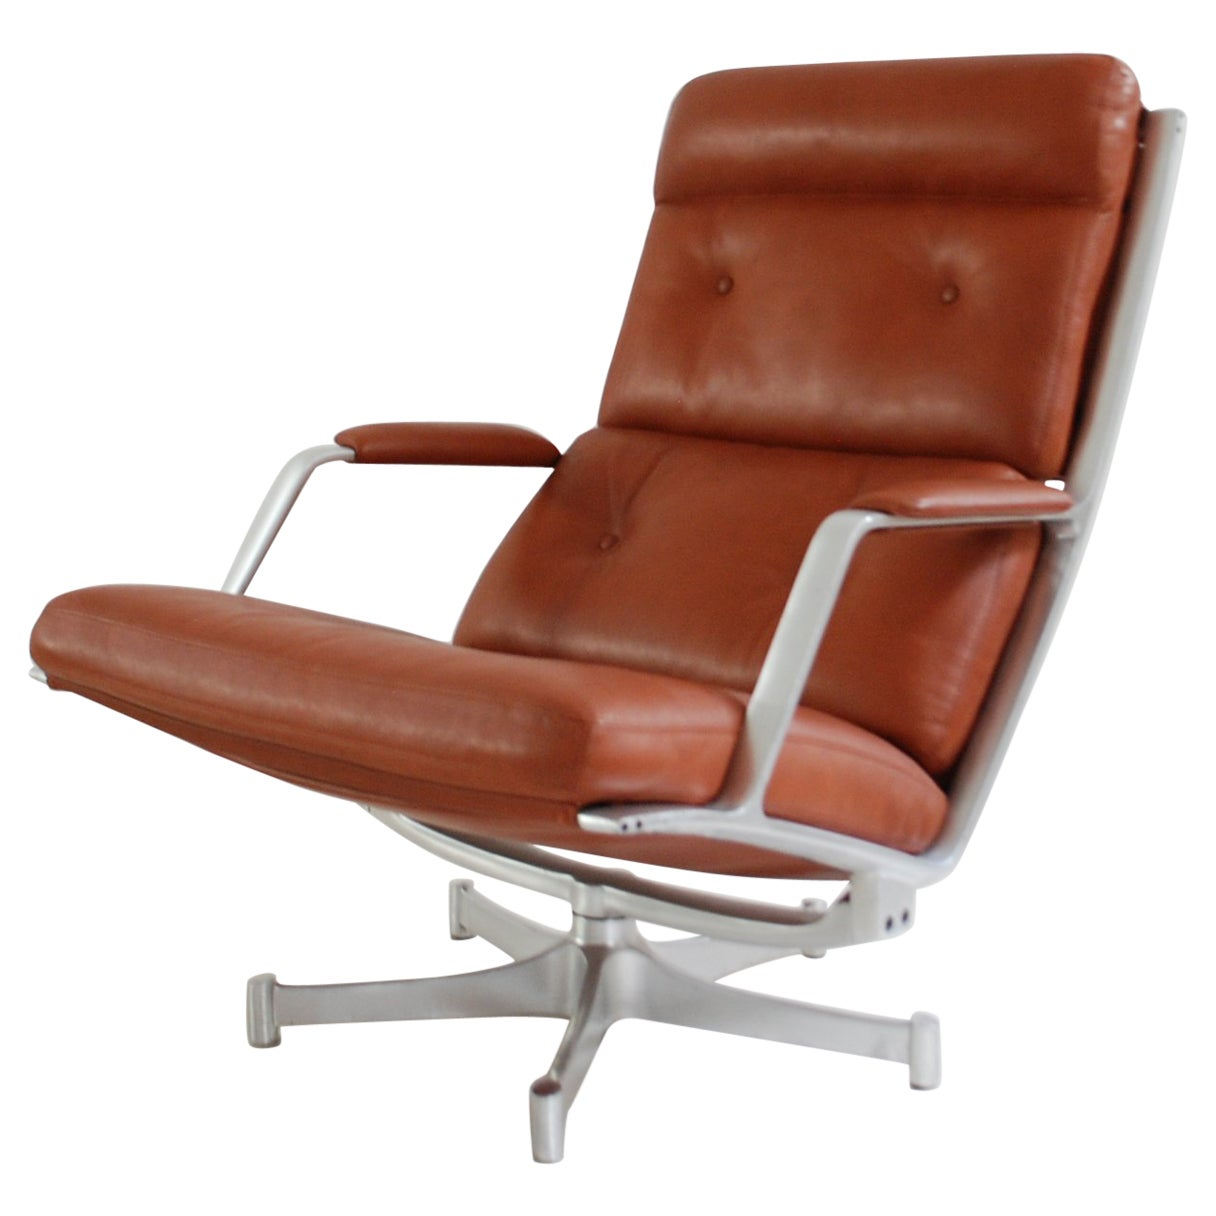 Kill International FK 85 Lounge Chair Red Cognac by Kastholm & Fabricius